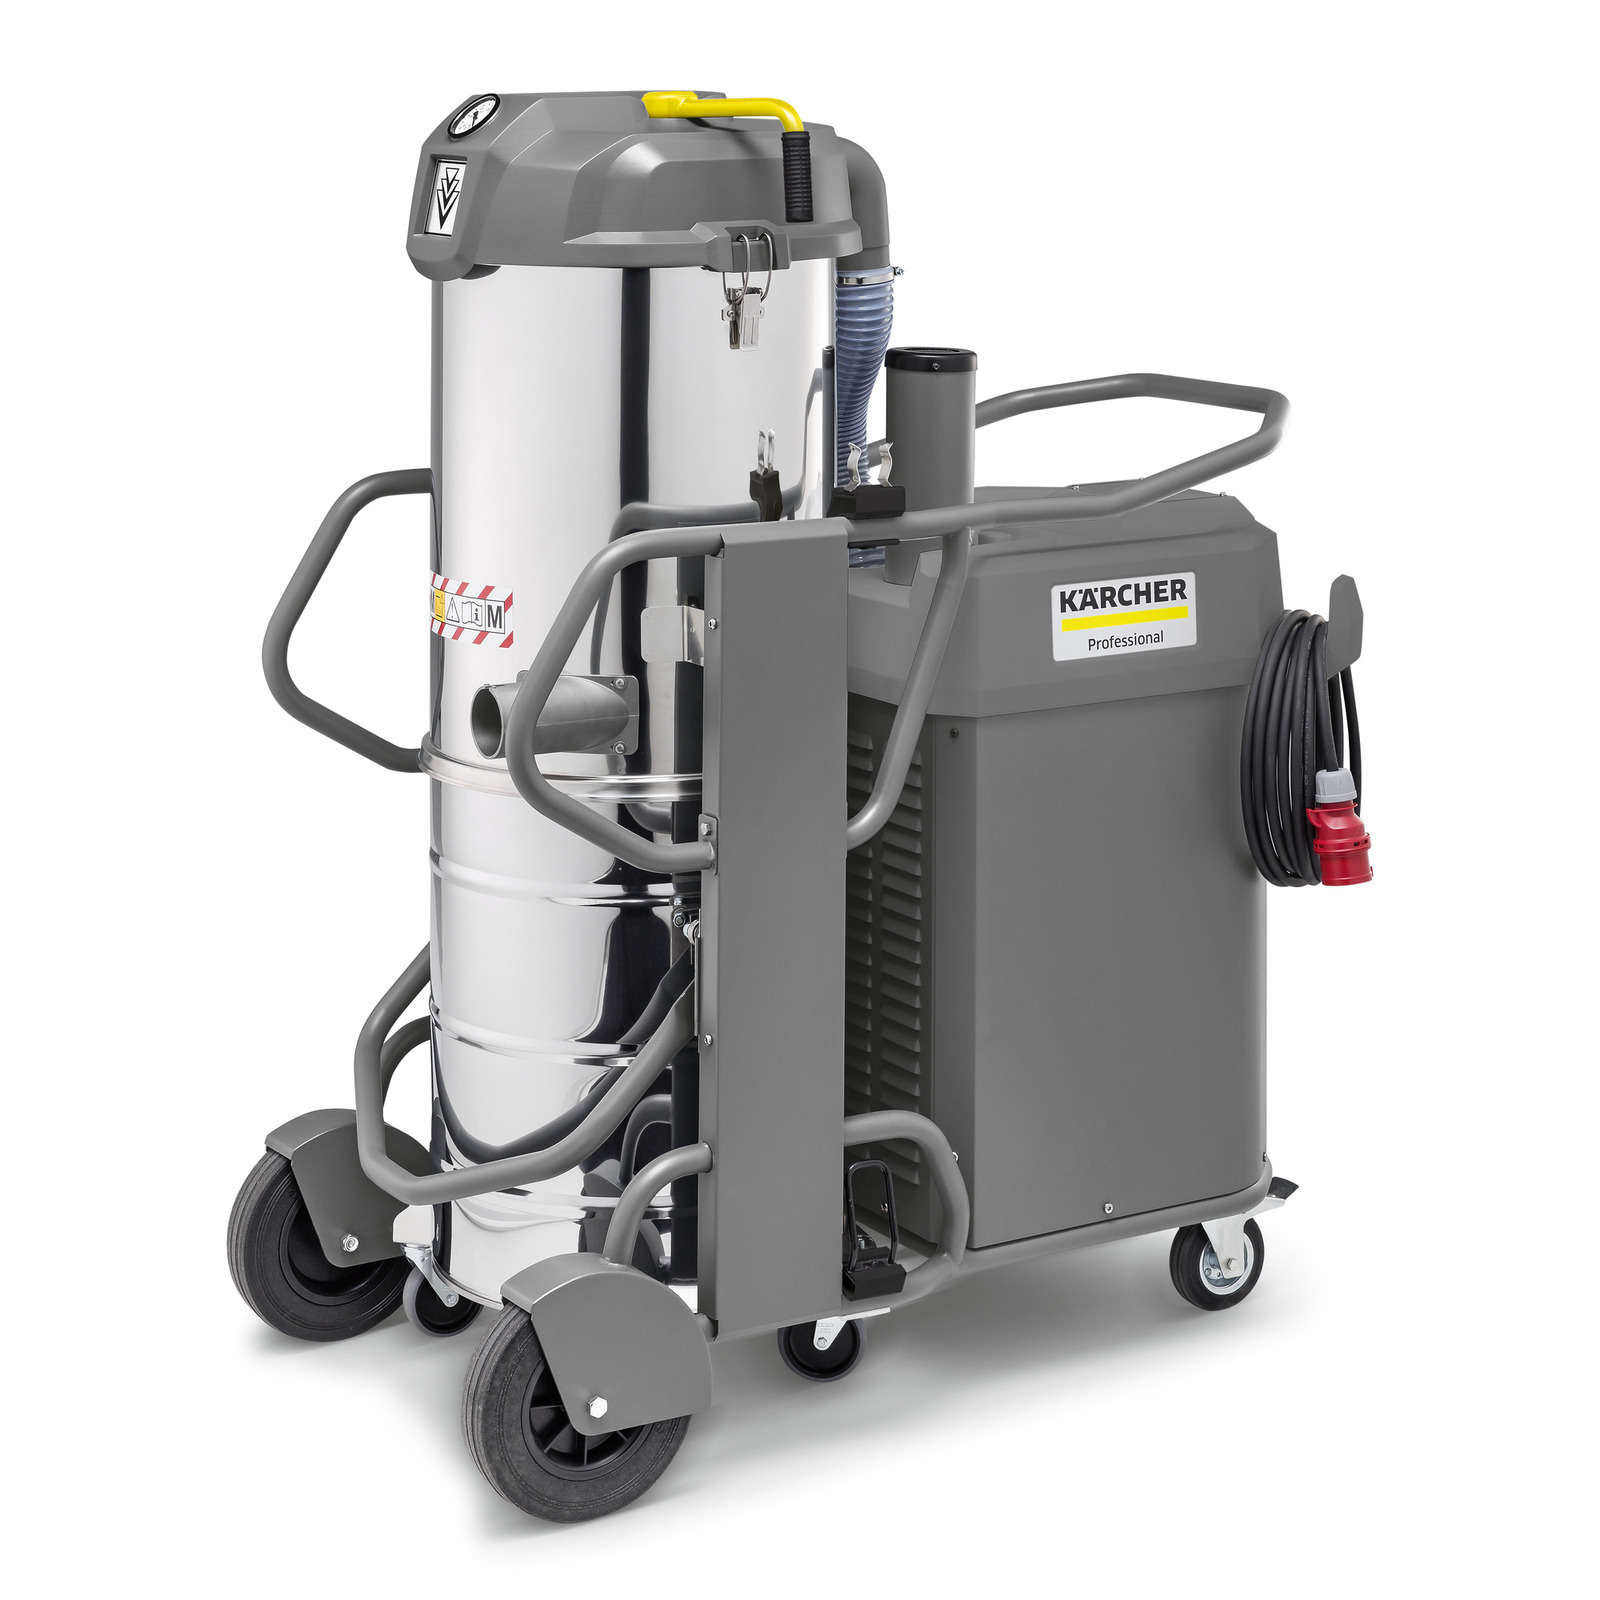 IVS 100/65 HEPA Industrial Vacuum Cleaner